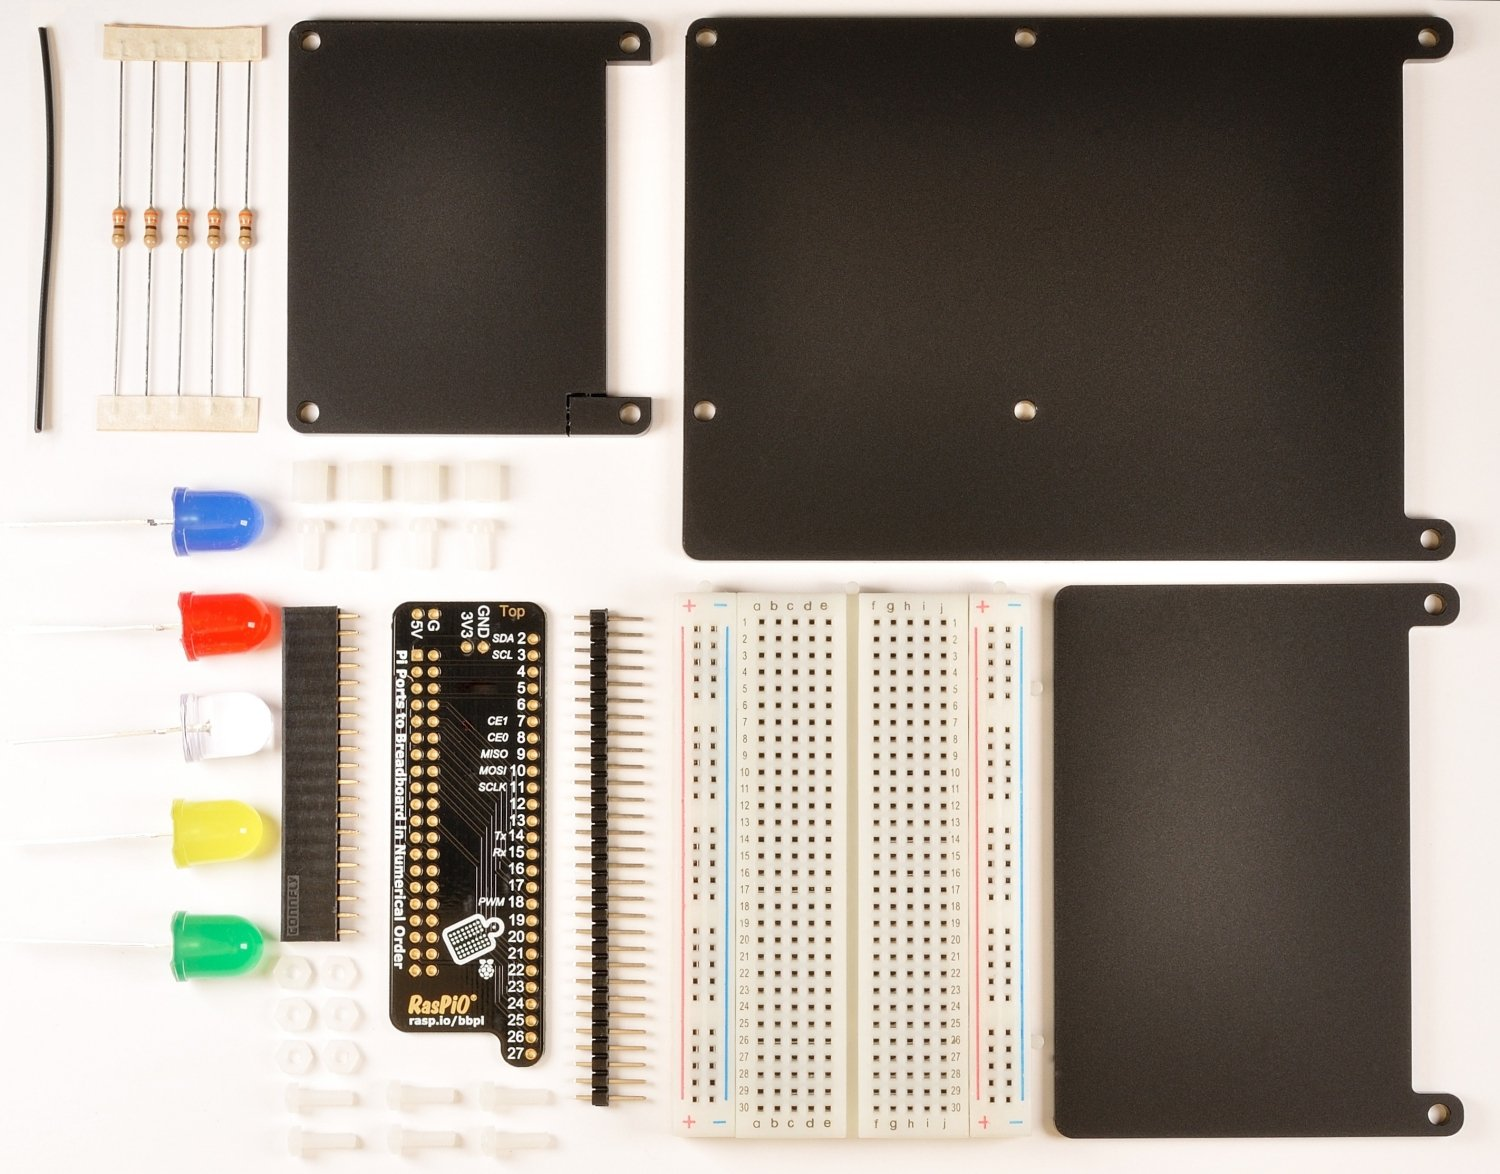 Make breadboarding your Raspberry Pi projects easier with